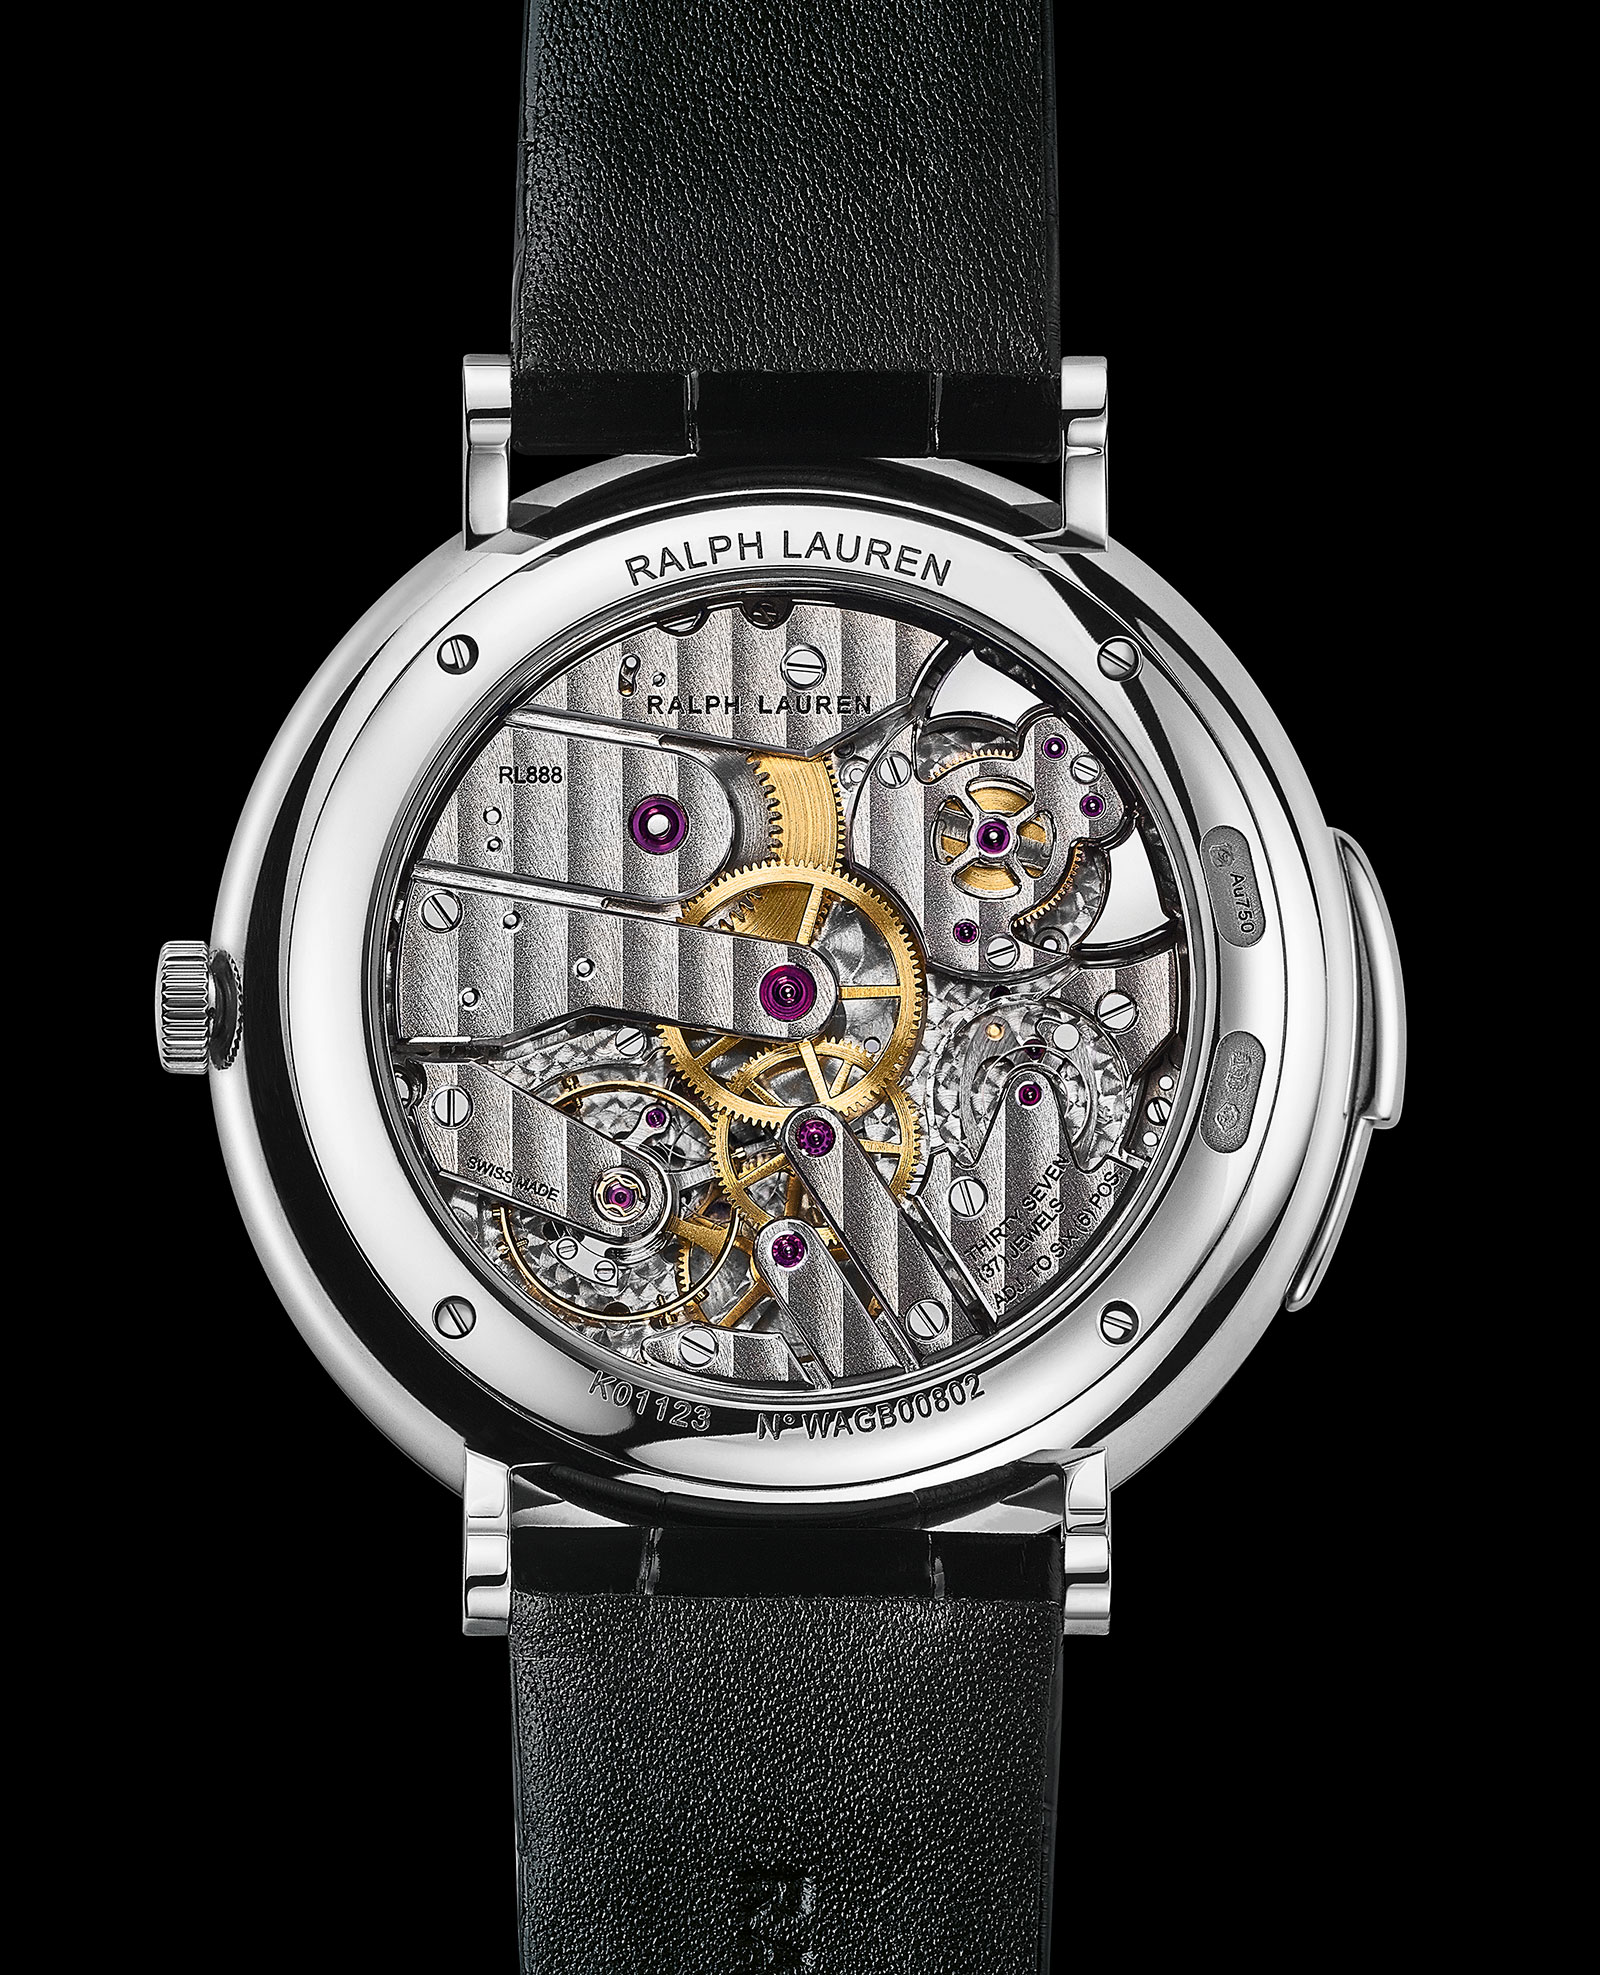 Ralph Lauren Minute Repeater Watch 4